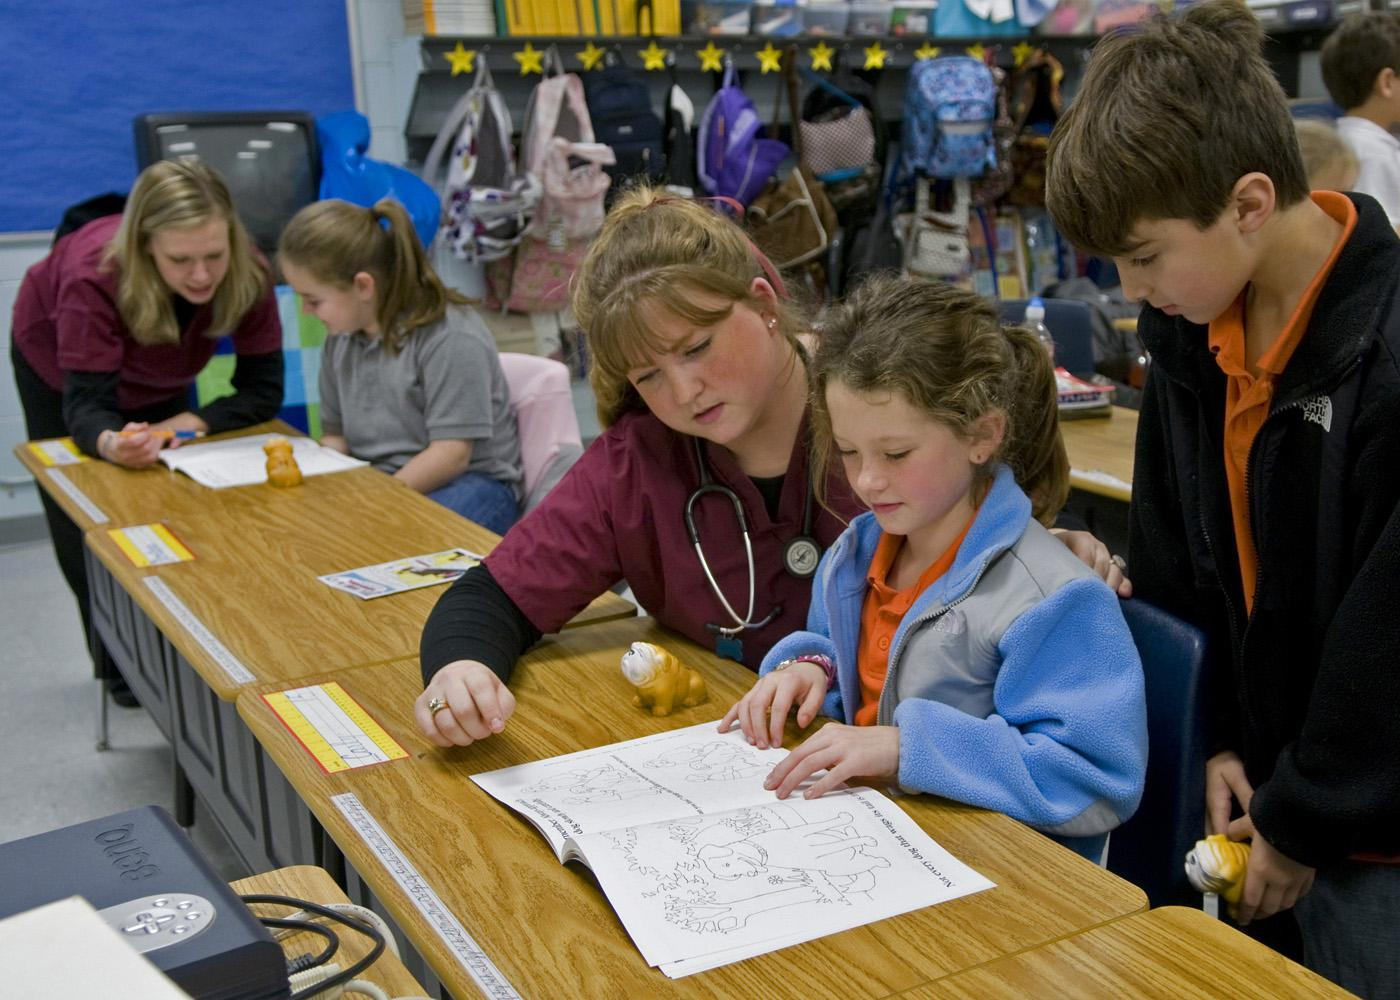 MSU veterinary student Shannon Vawter of Horn Lake works with third grade Starkville Academy students Carly Smith and Montana Brasher while MSU student Katie Ebers of Jackson (background) spends a moment with elementary student Mallory Barber. (Photo by Tom Thompson)